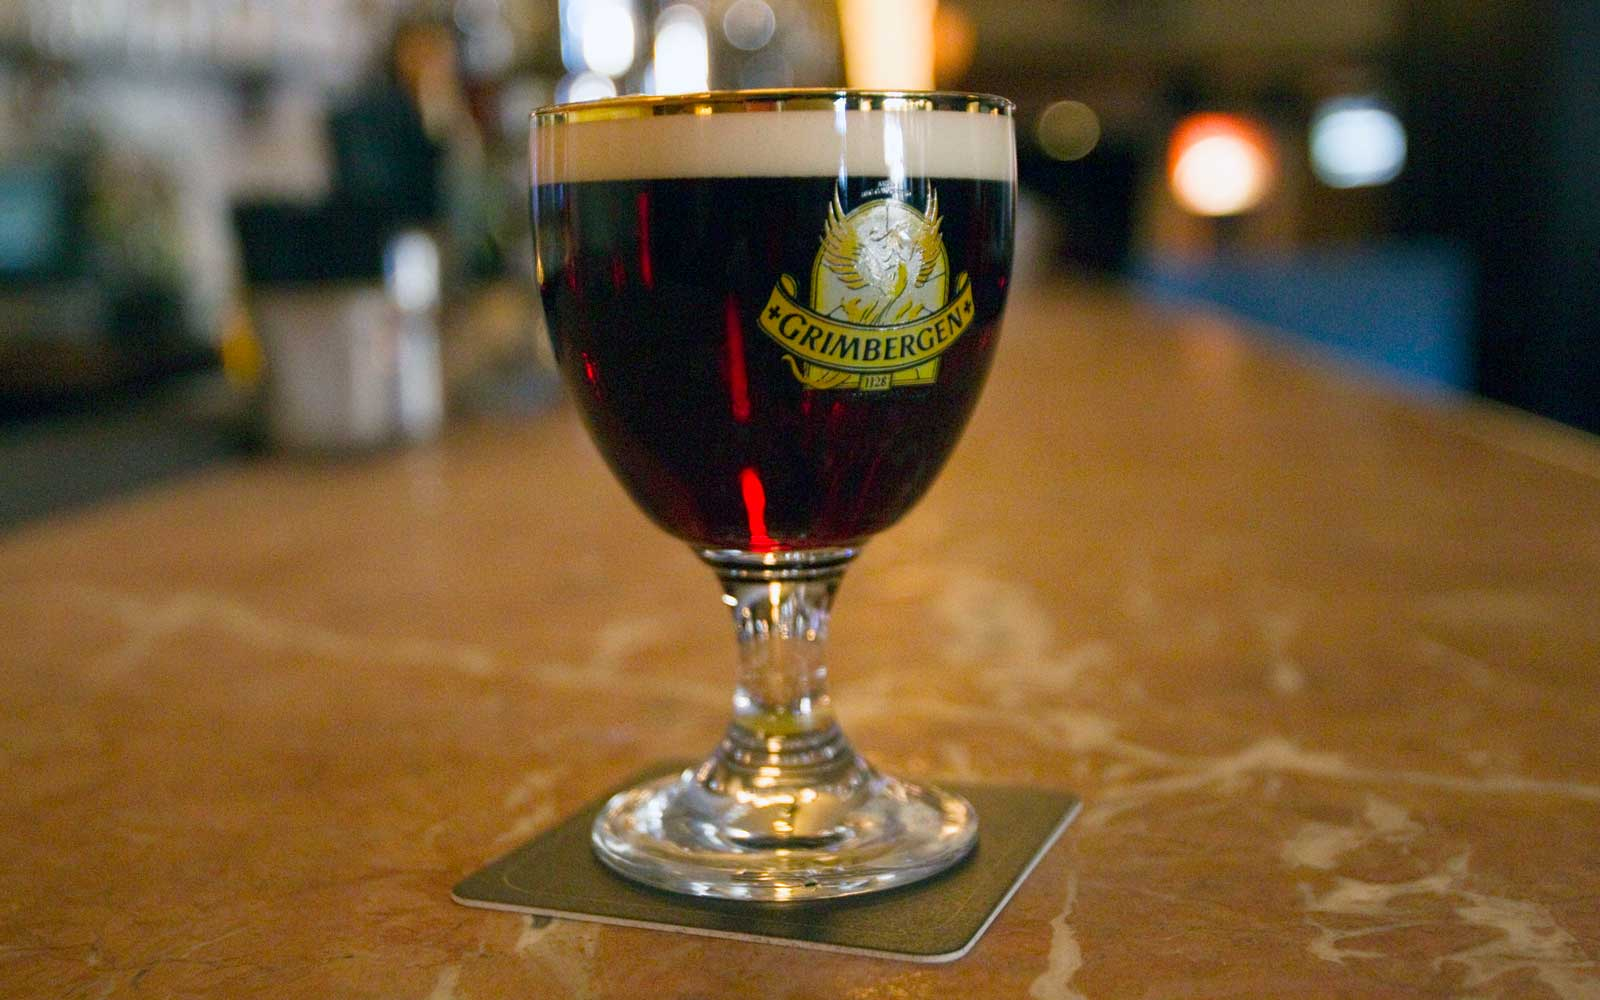 Grimbergen Dubbel draught, the legendary Belgian abbey beer